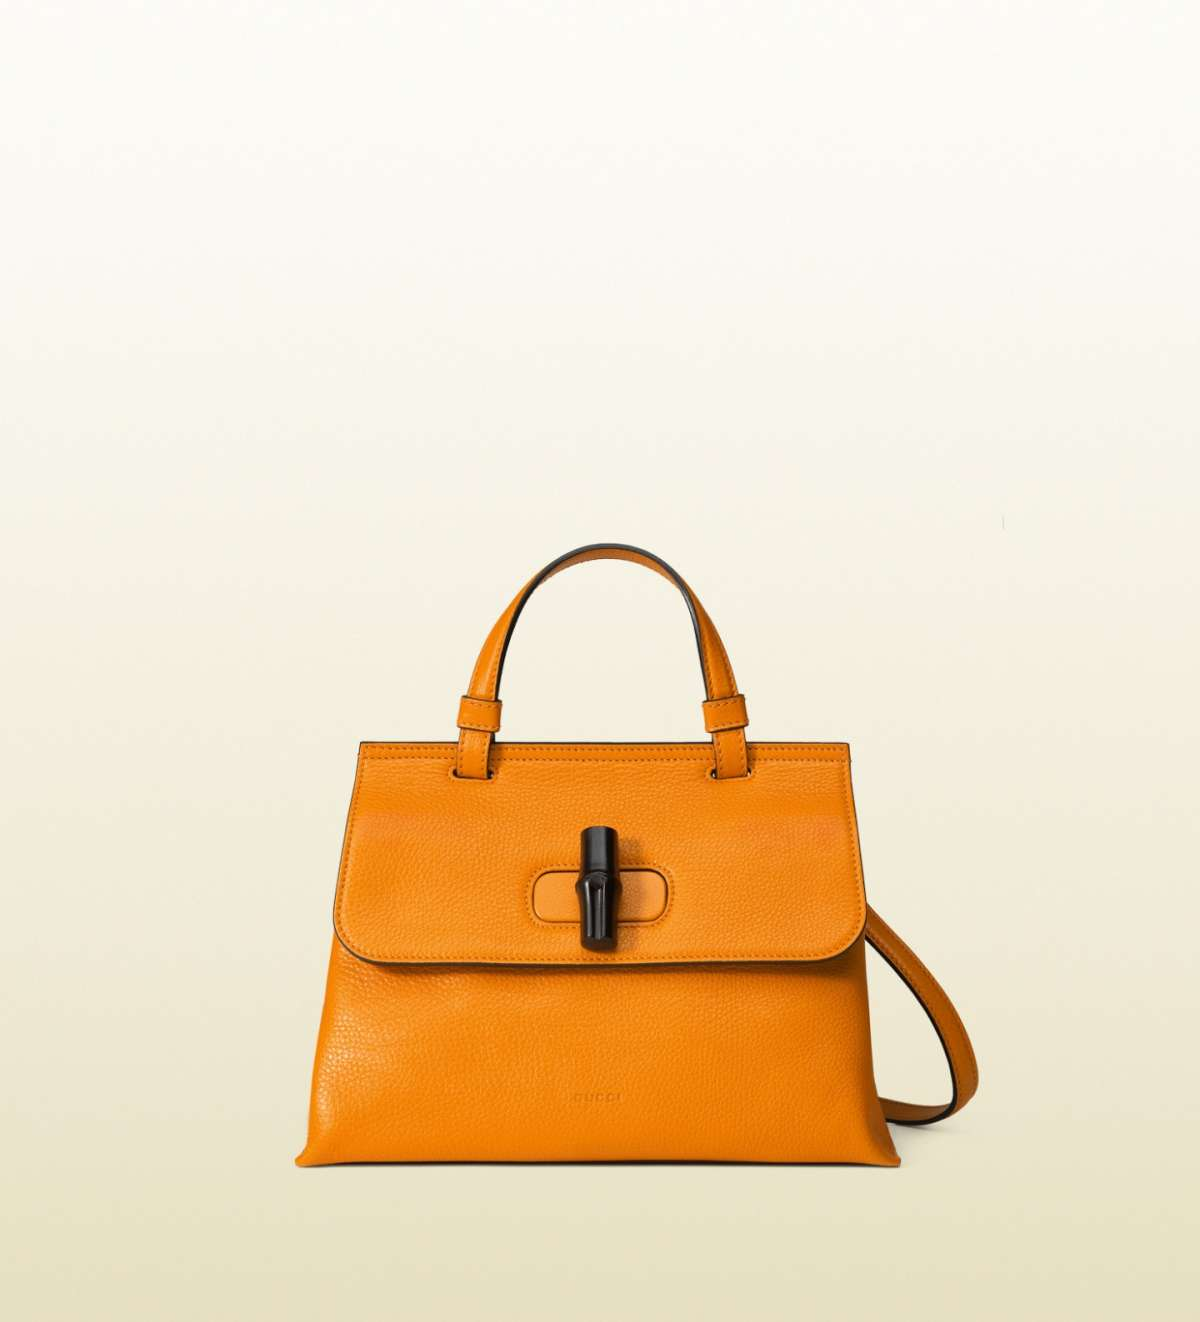 Handbag Bamboo Daily Gucci in pelle